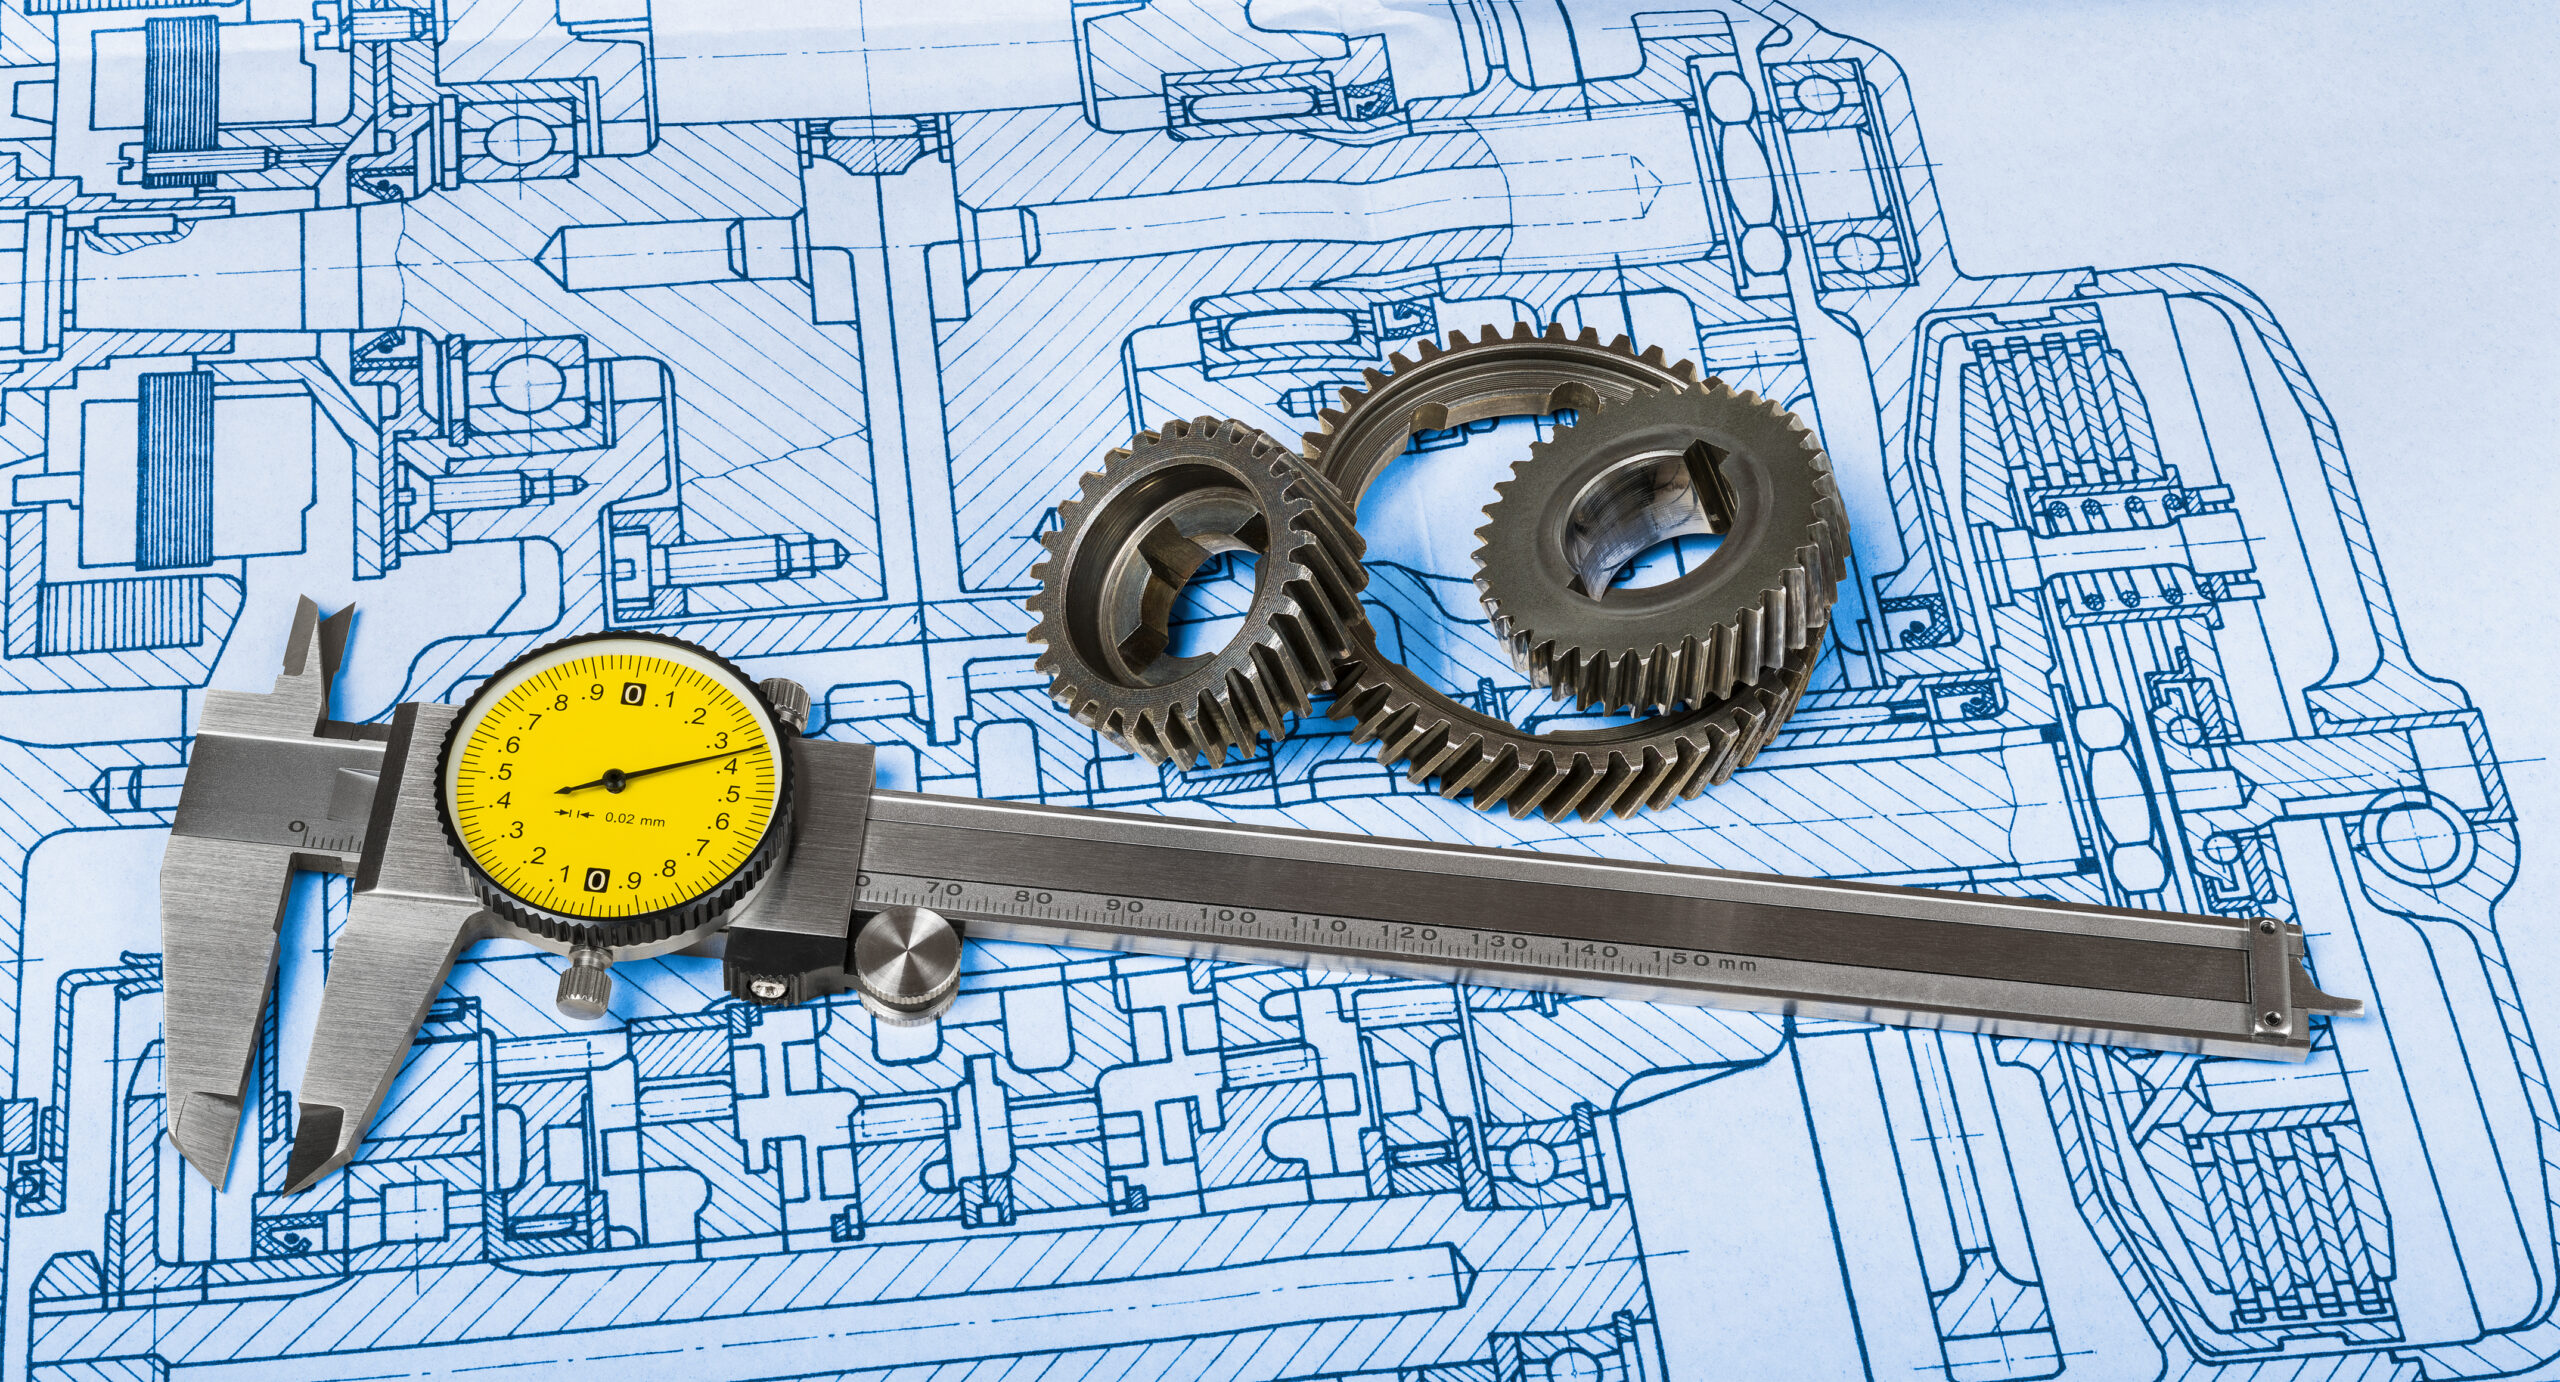 Sliding measuring tool. Round yellow dial. Steel gear wheels. Cogged metal parts on old professional documentation. Hatched plan. Engineering